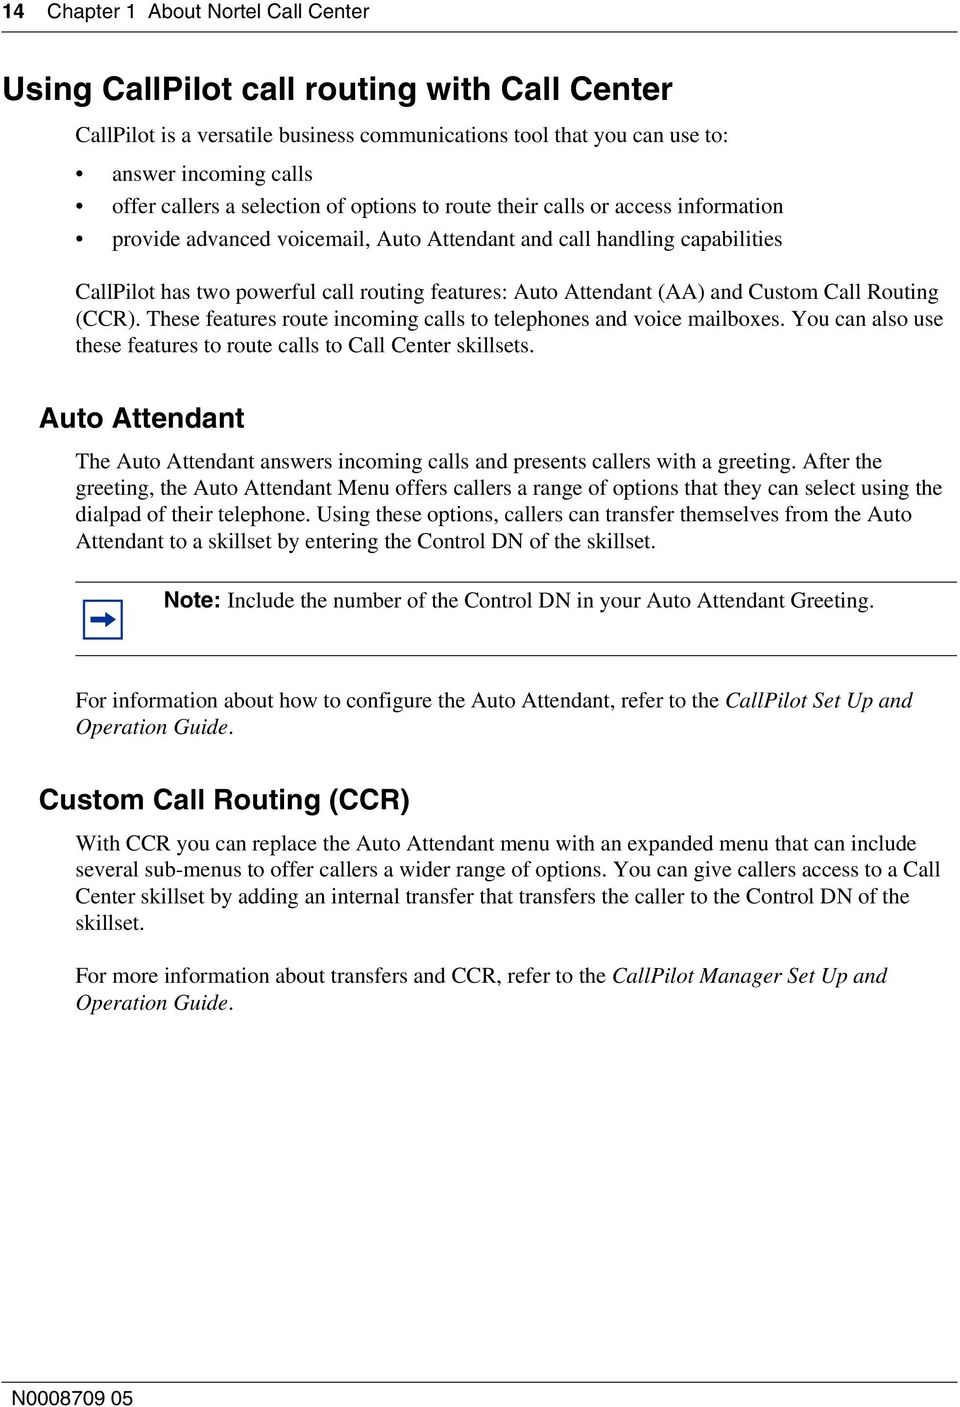 Attendant (AA) and Custom Call Routing (CCR). These features route incoming calls to telephones and voice mailboxes. You can also use these features to route calls to Call Center skillsets.